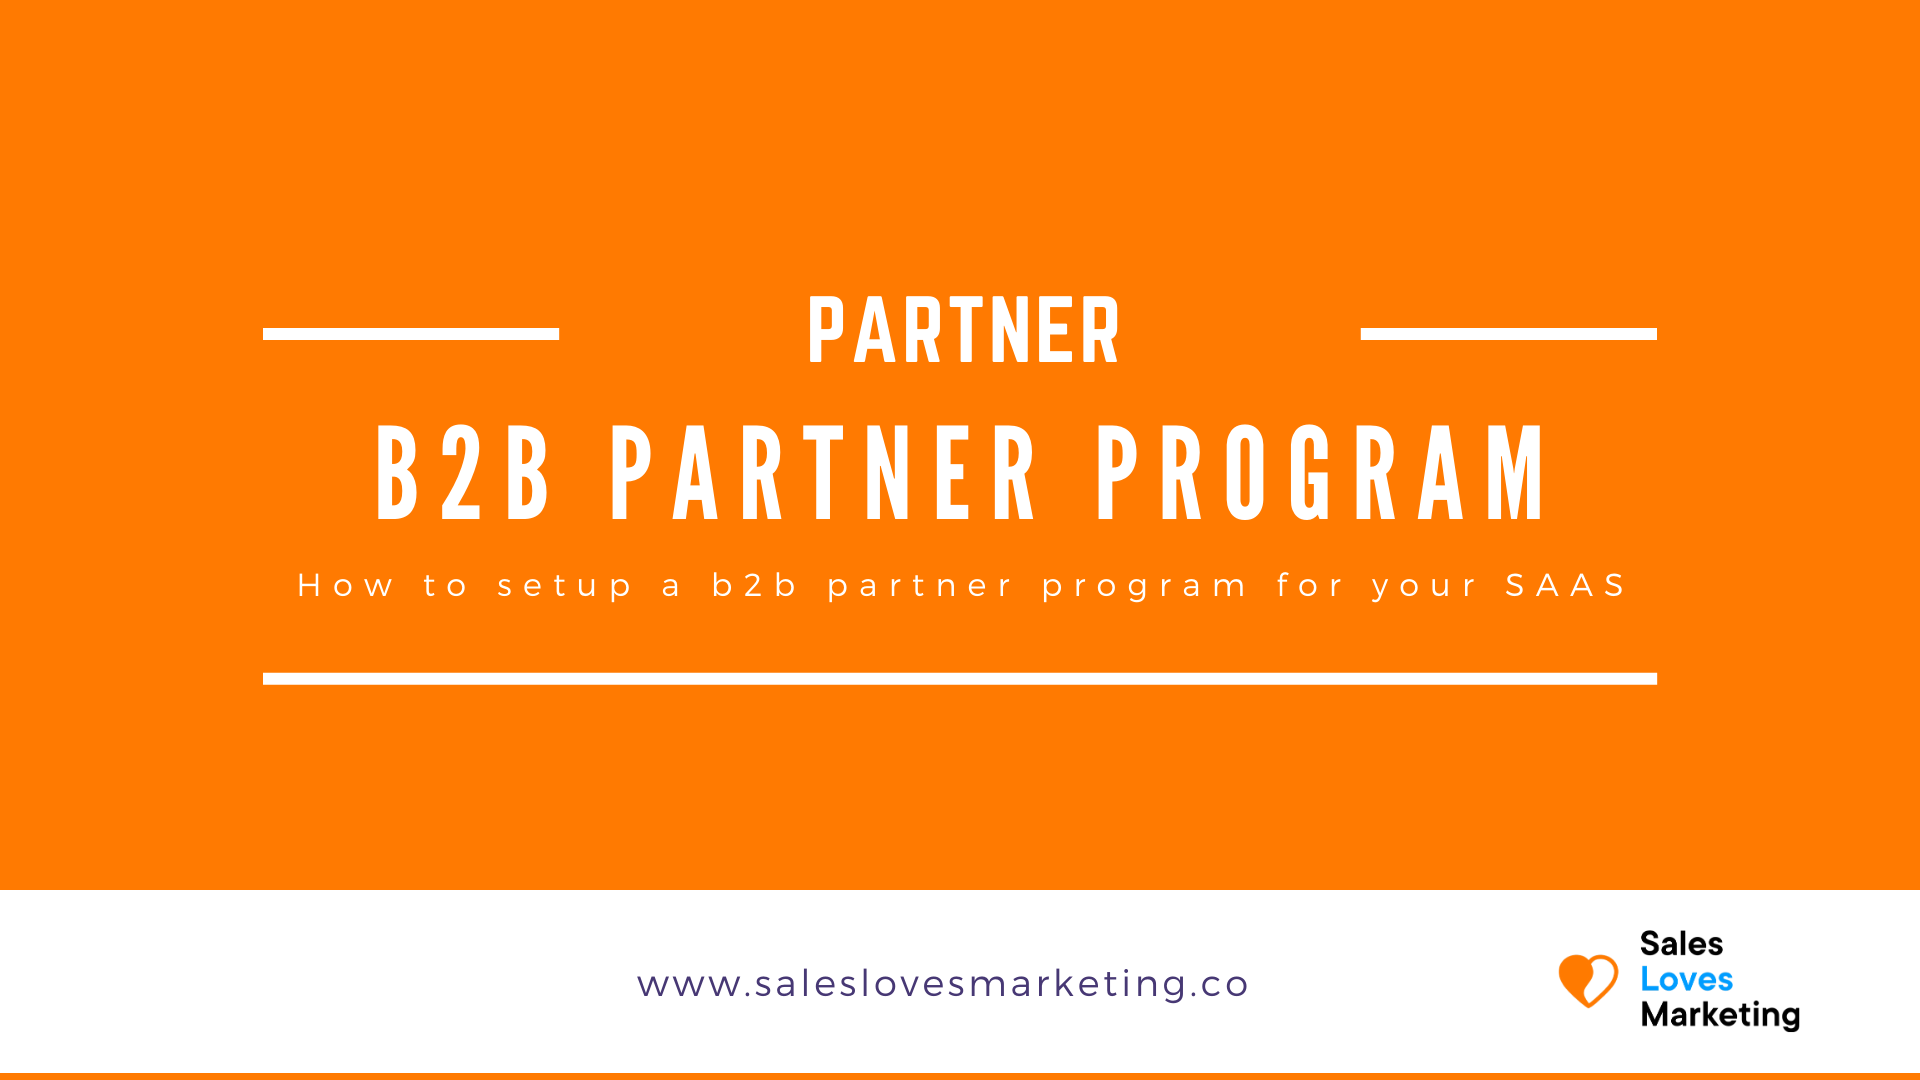 Setup a partner program for your B2B SaaS by following these steps